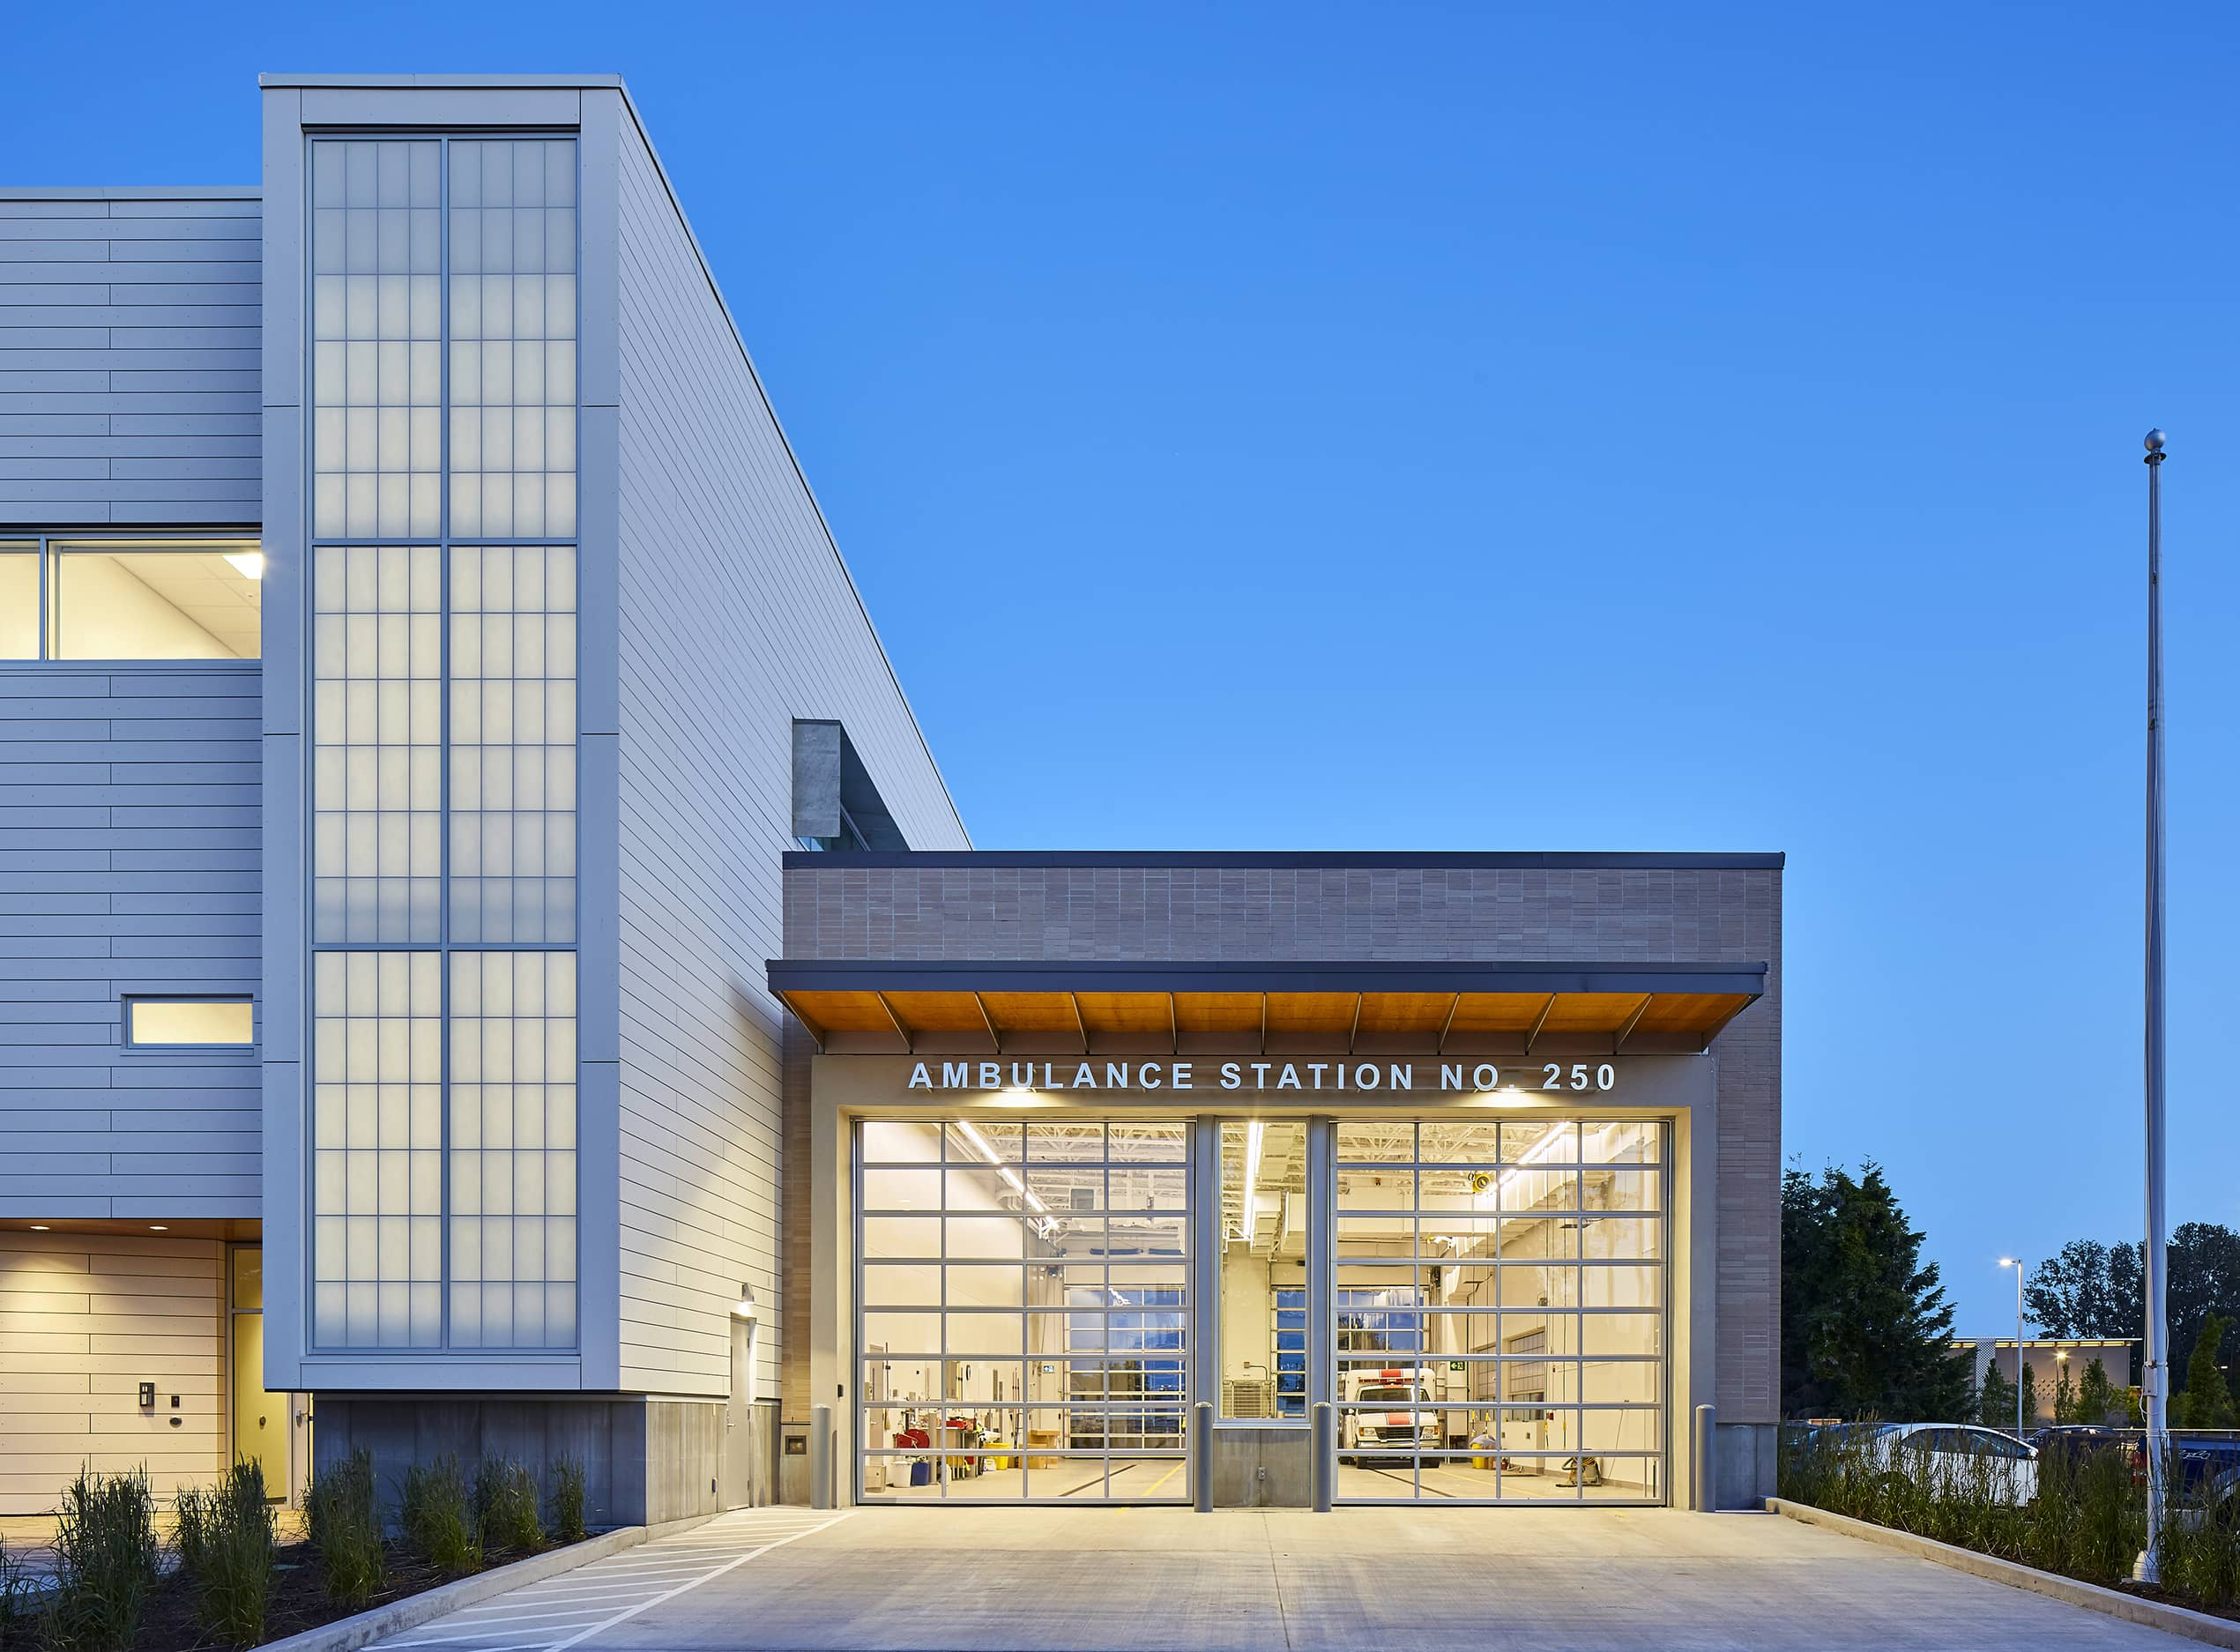 bbp cambie fire hall no. 3 & ambulance station exterior 2